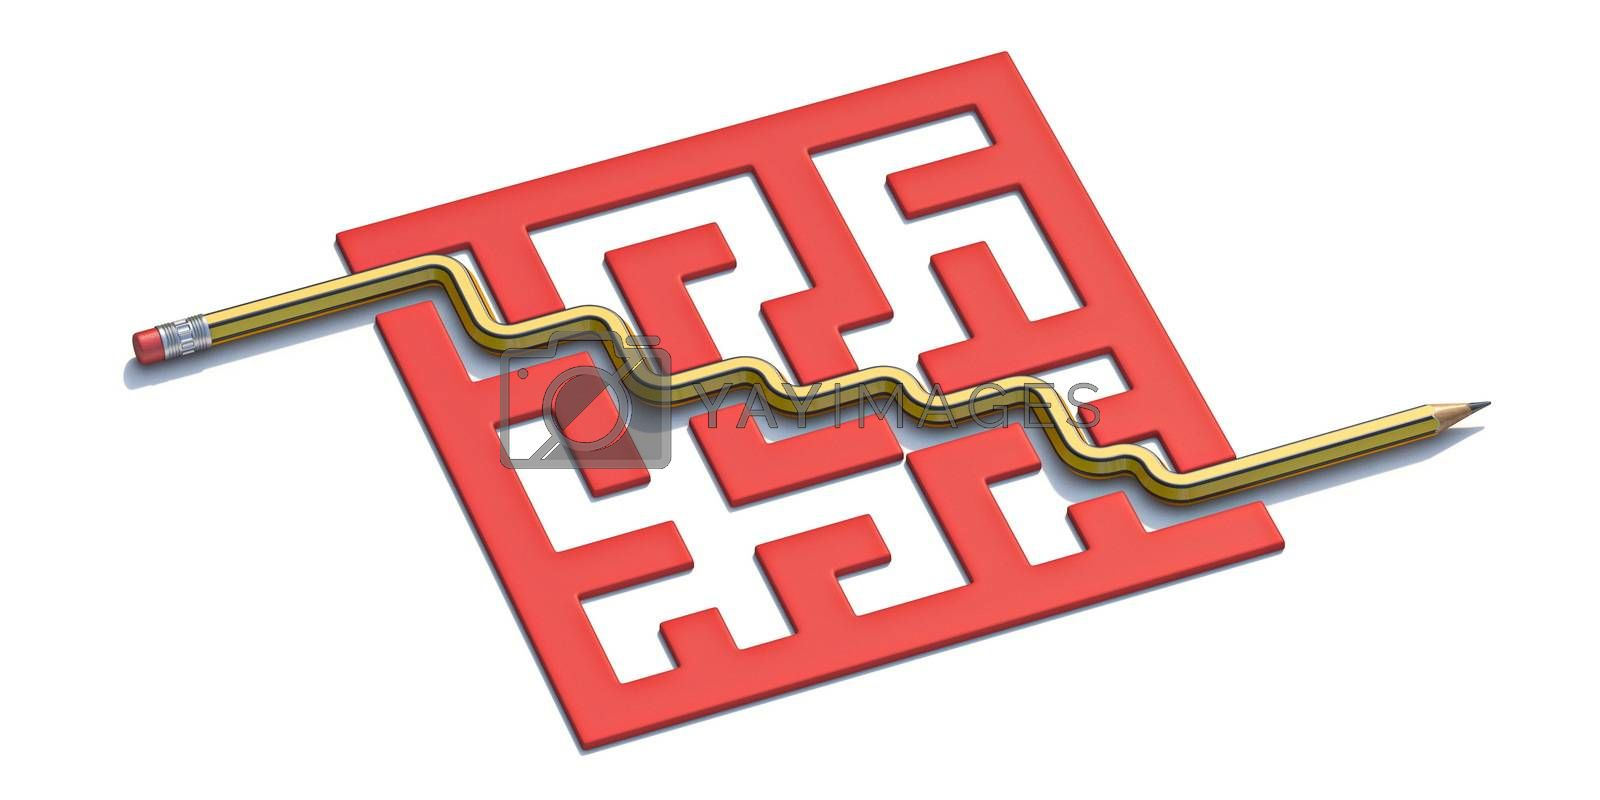 Pencil and red labyrinth 3D render illustration isolated on white background